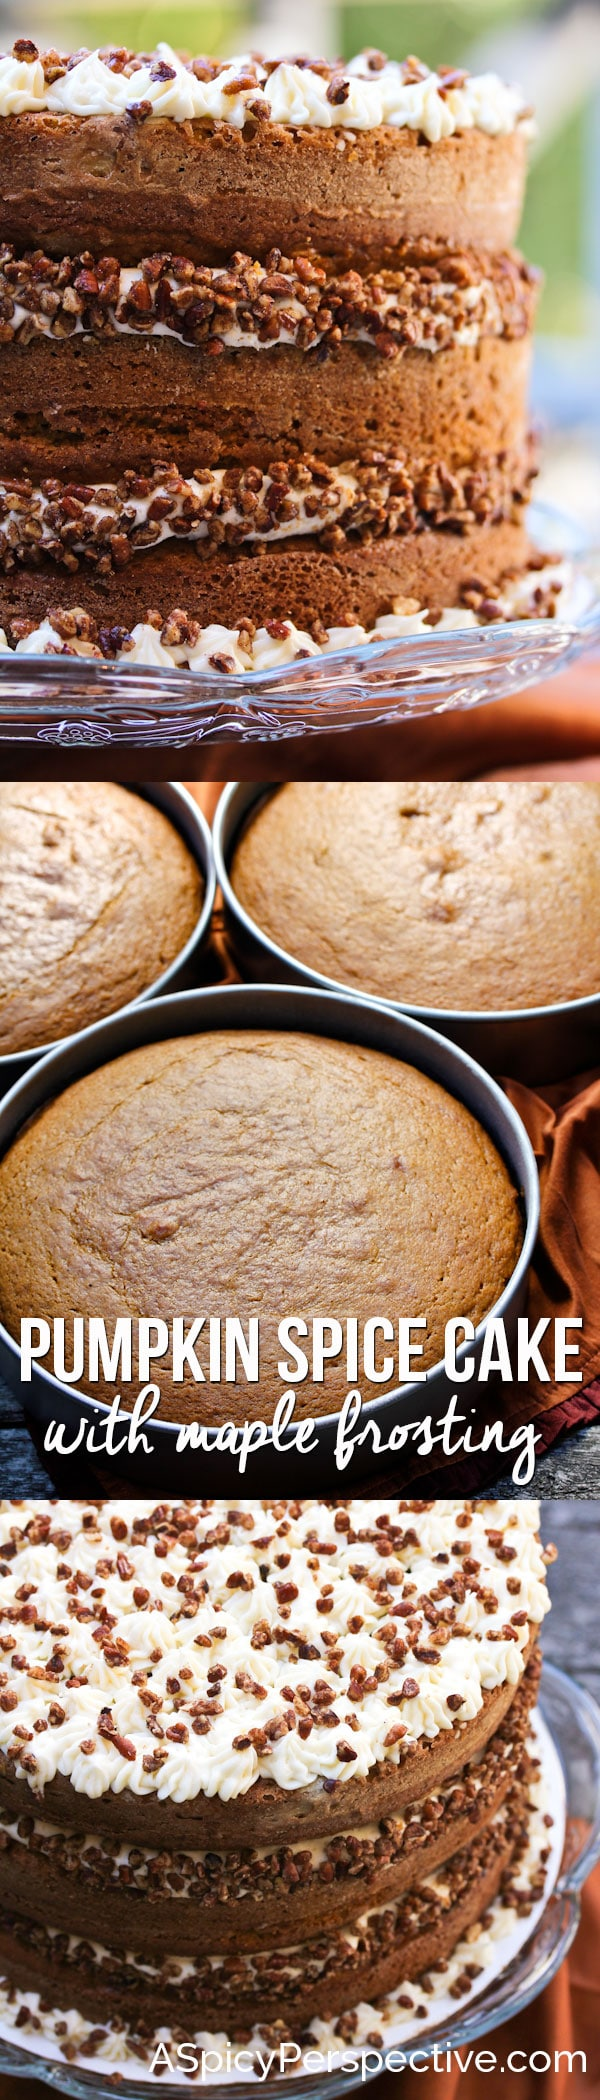 ... can satisfy the craving like Pumpkin Spice Cake with Maple Frosting